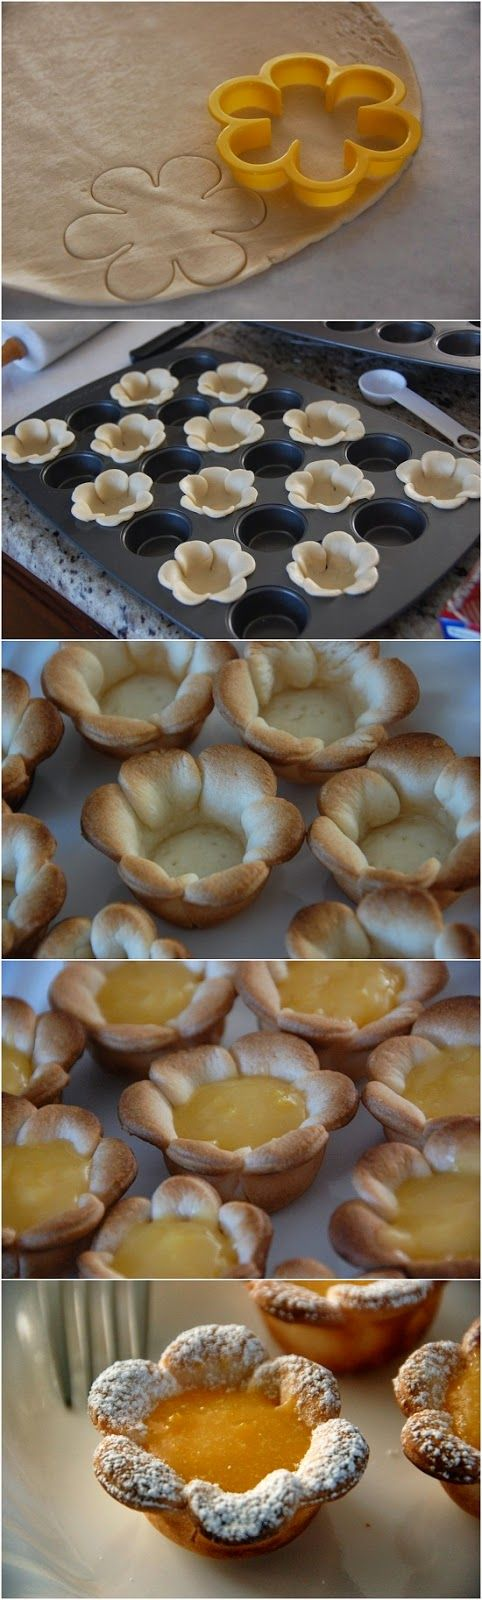 Flower shaped Mini Lemon Curd Tarts or fill with crab or chicken salad